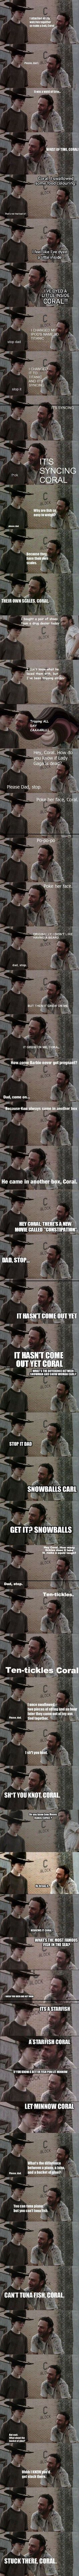 Most Terrible Rick Grimes Dad Jokes Ever